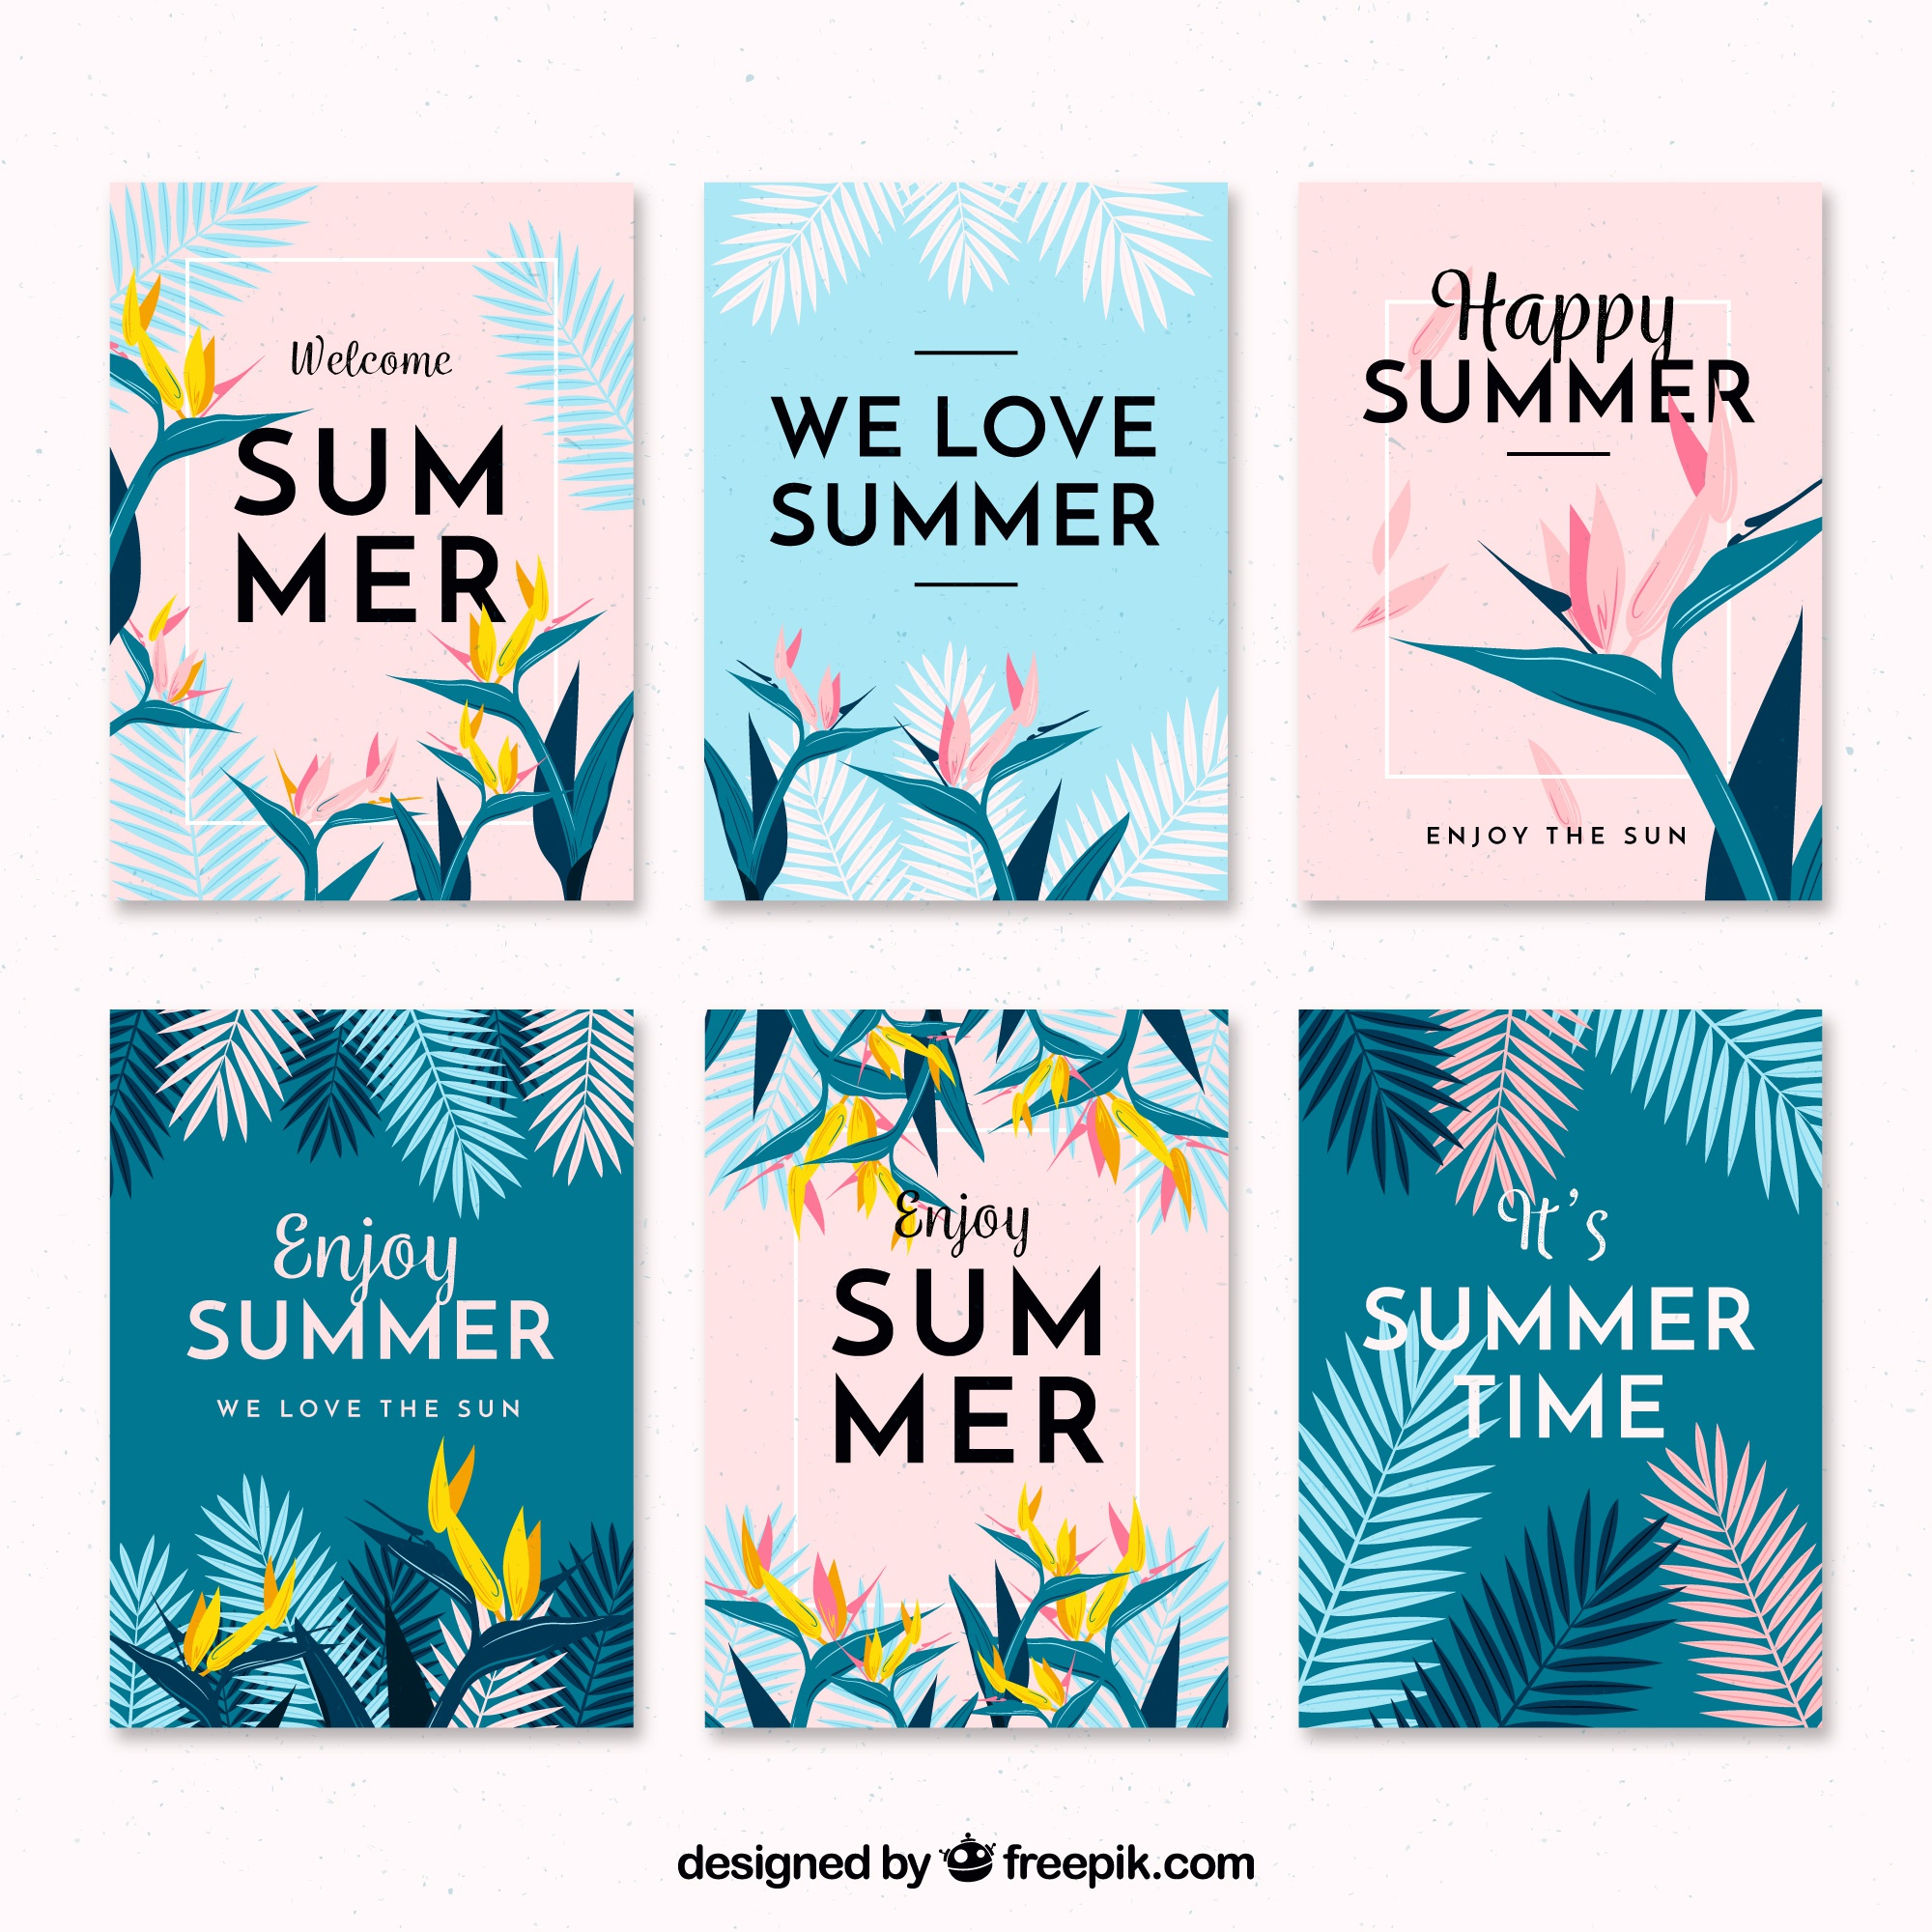 Flat design modern summer card collection